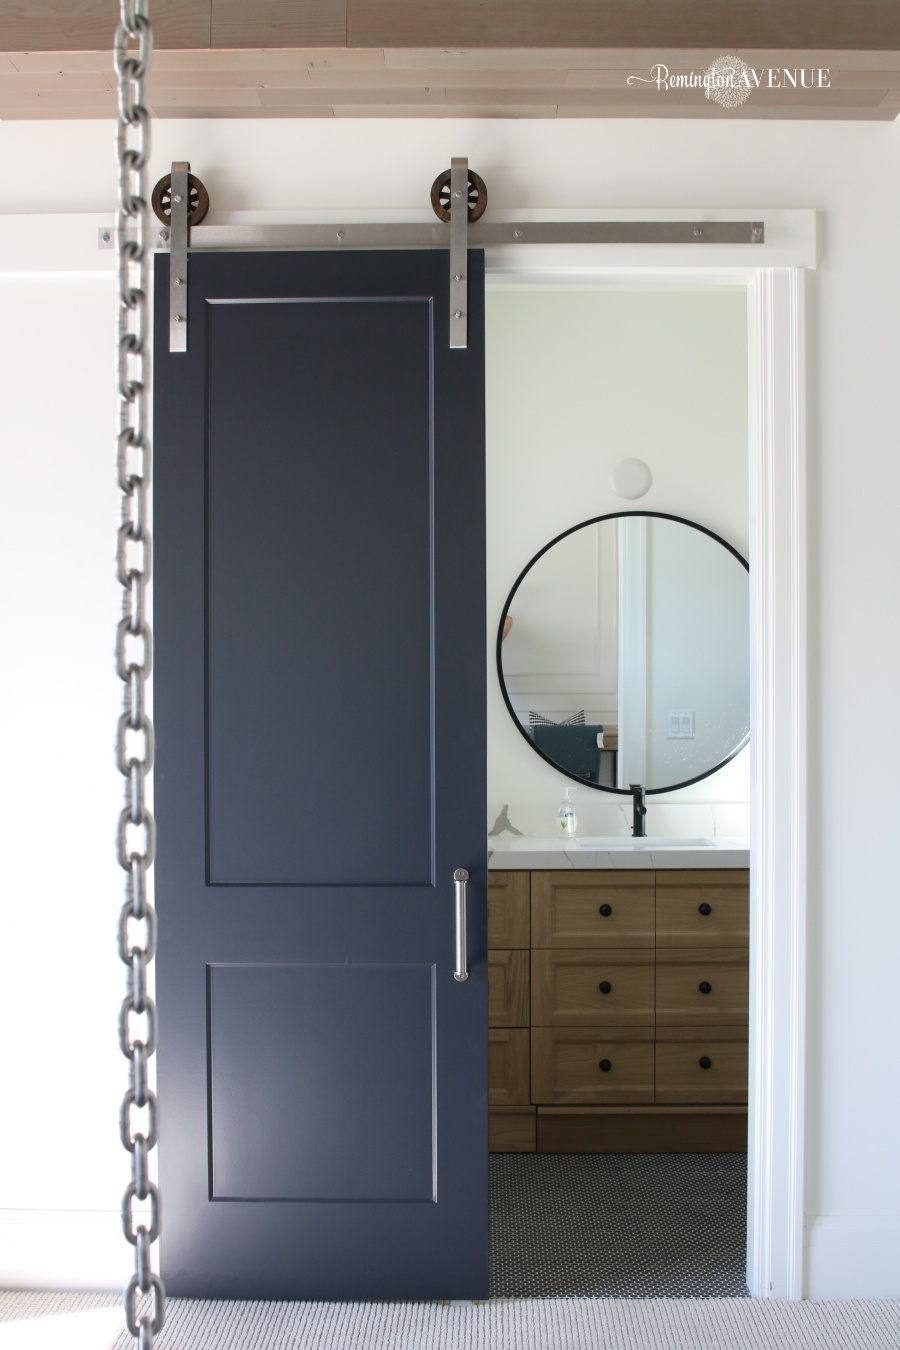 Modern industrial boys bedroom design with stainless steel and wood accents